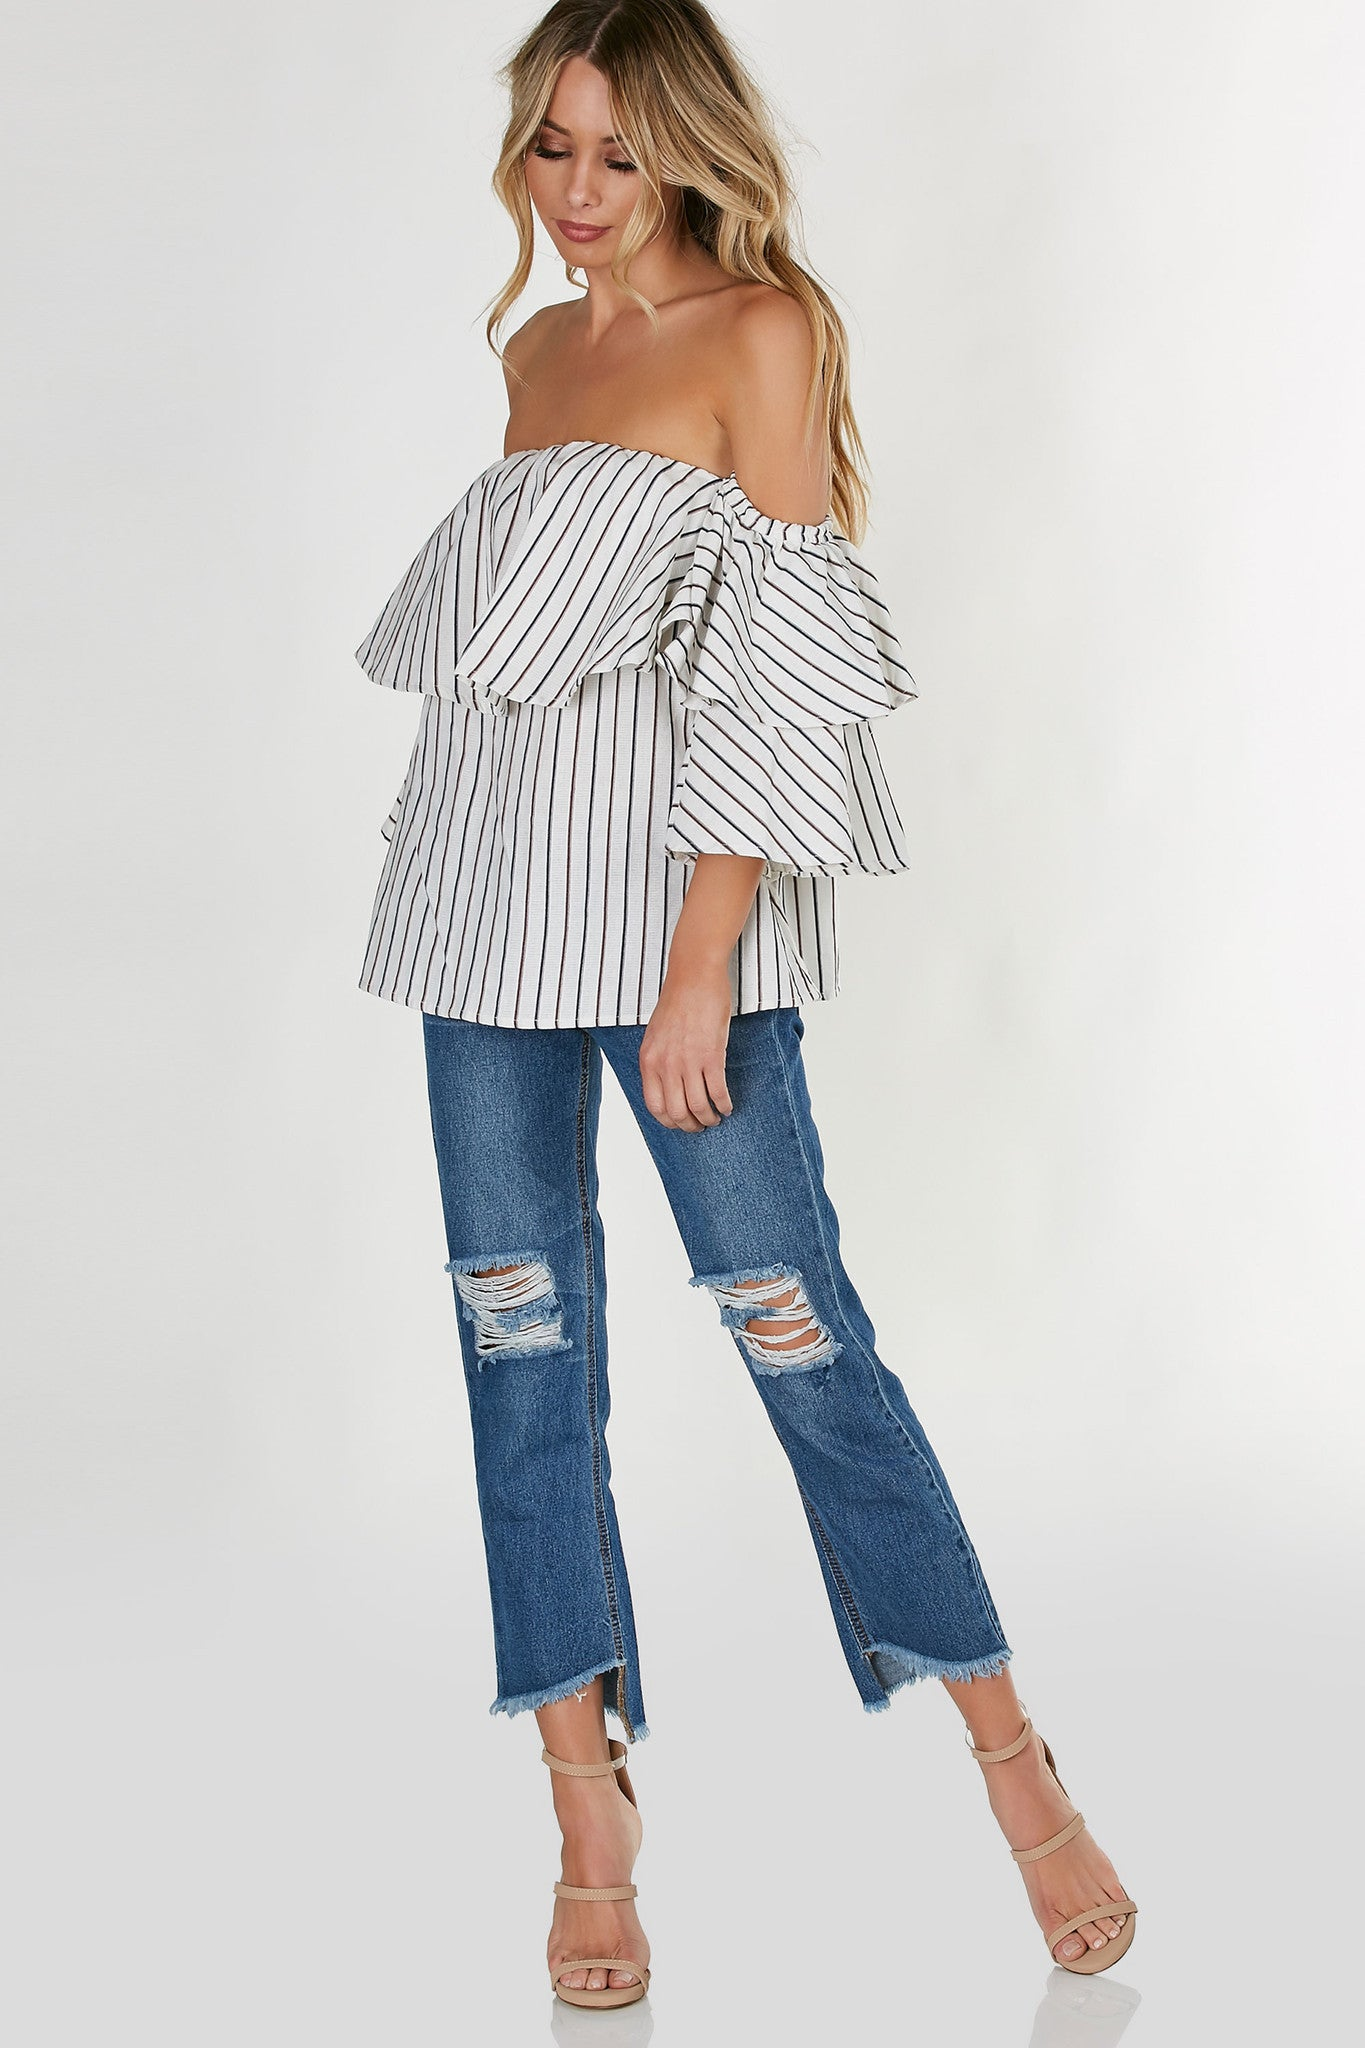 Flared off shoulder top with tiered ruffle sleeves and stripe patterns throughout. Structured fit with elasticized neckline.